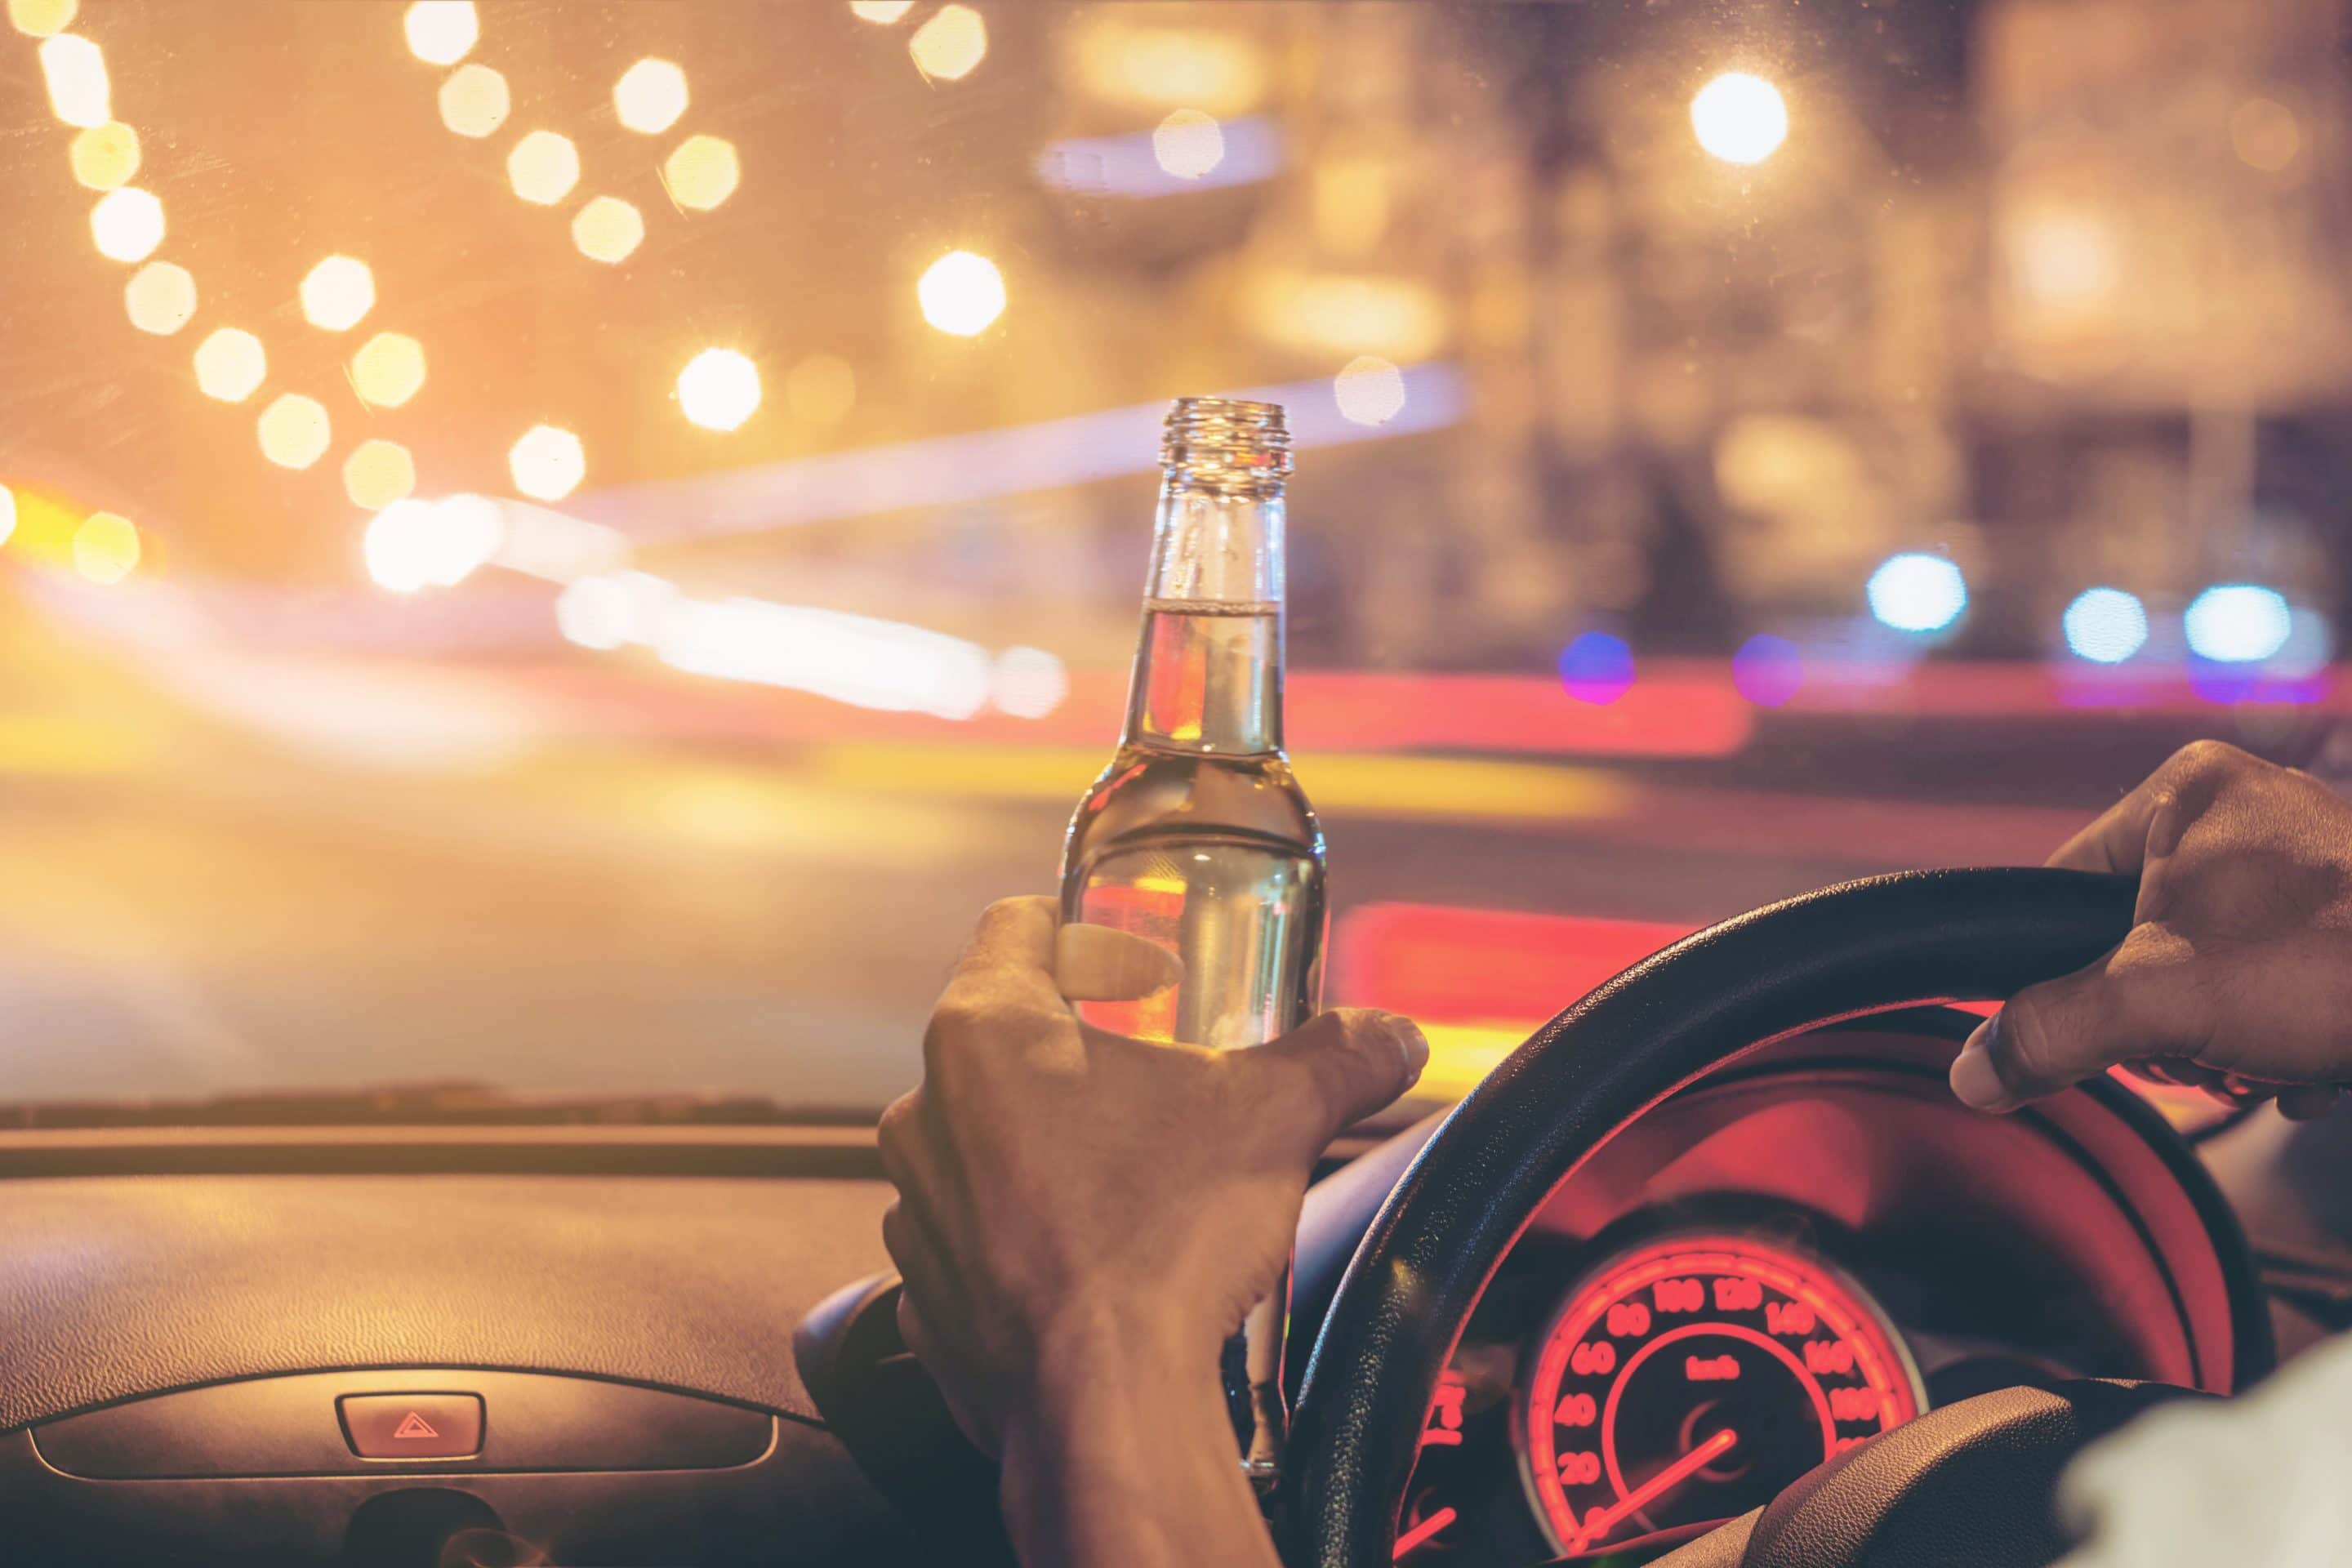 Drunk young man driving a car with a bottle of beer. Don't drink and drive concept. Driving under the influence. DUI, Driving while intoxicated.